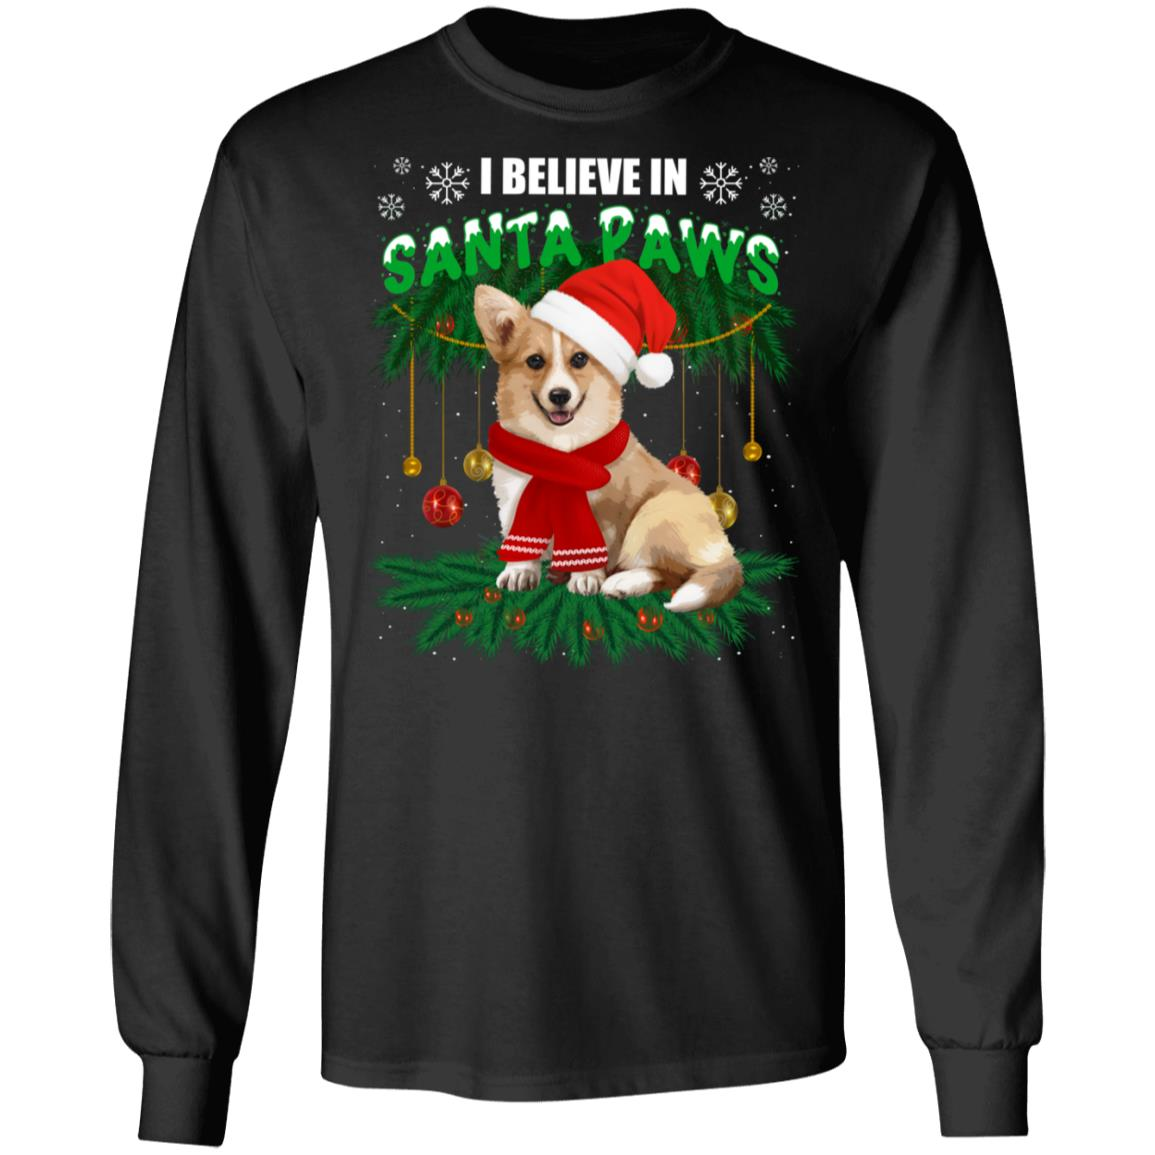 Cute Corgi Dog Breed Happy Puppy Animal Lover Hooded Sweater Pullover Hoodie